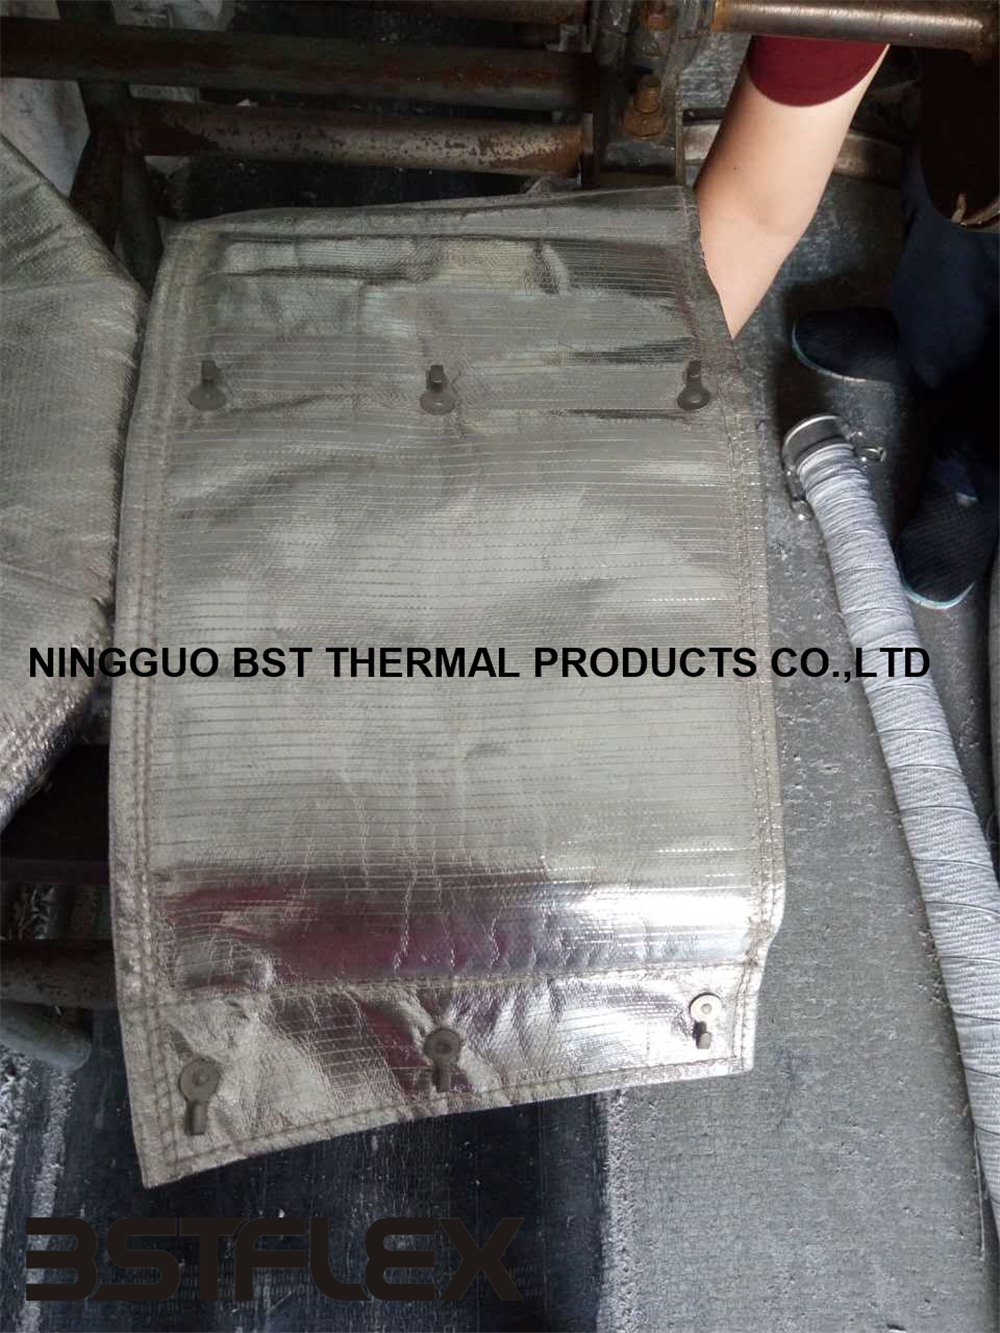 Removable heater insulation material